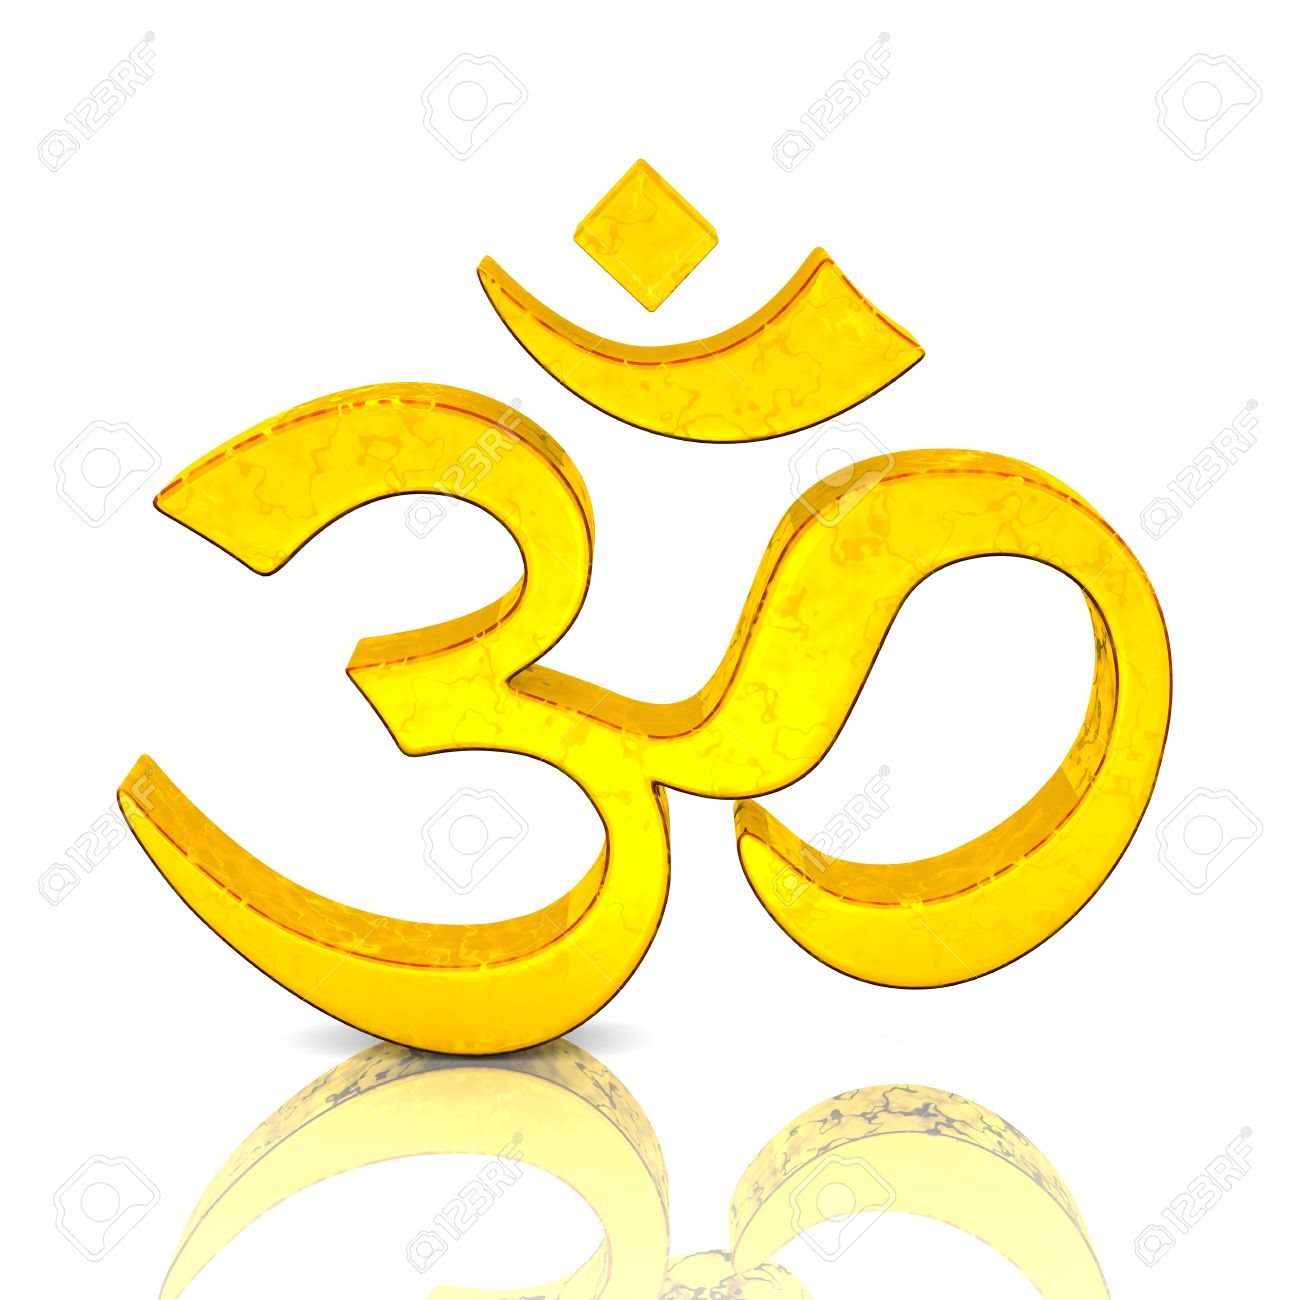 om images 3d  3D - Magic Gold OM Sign Stock Photo, Picture And Royalty Free Image ...